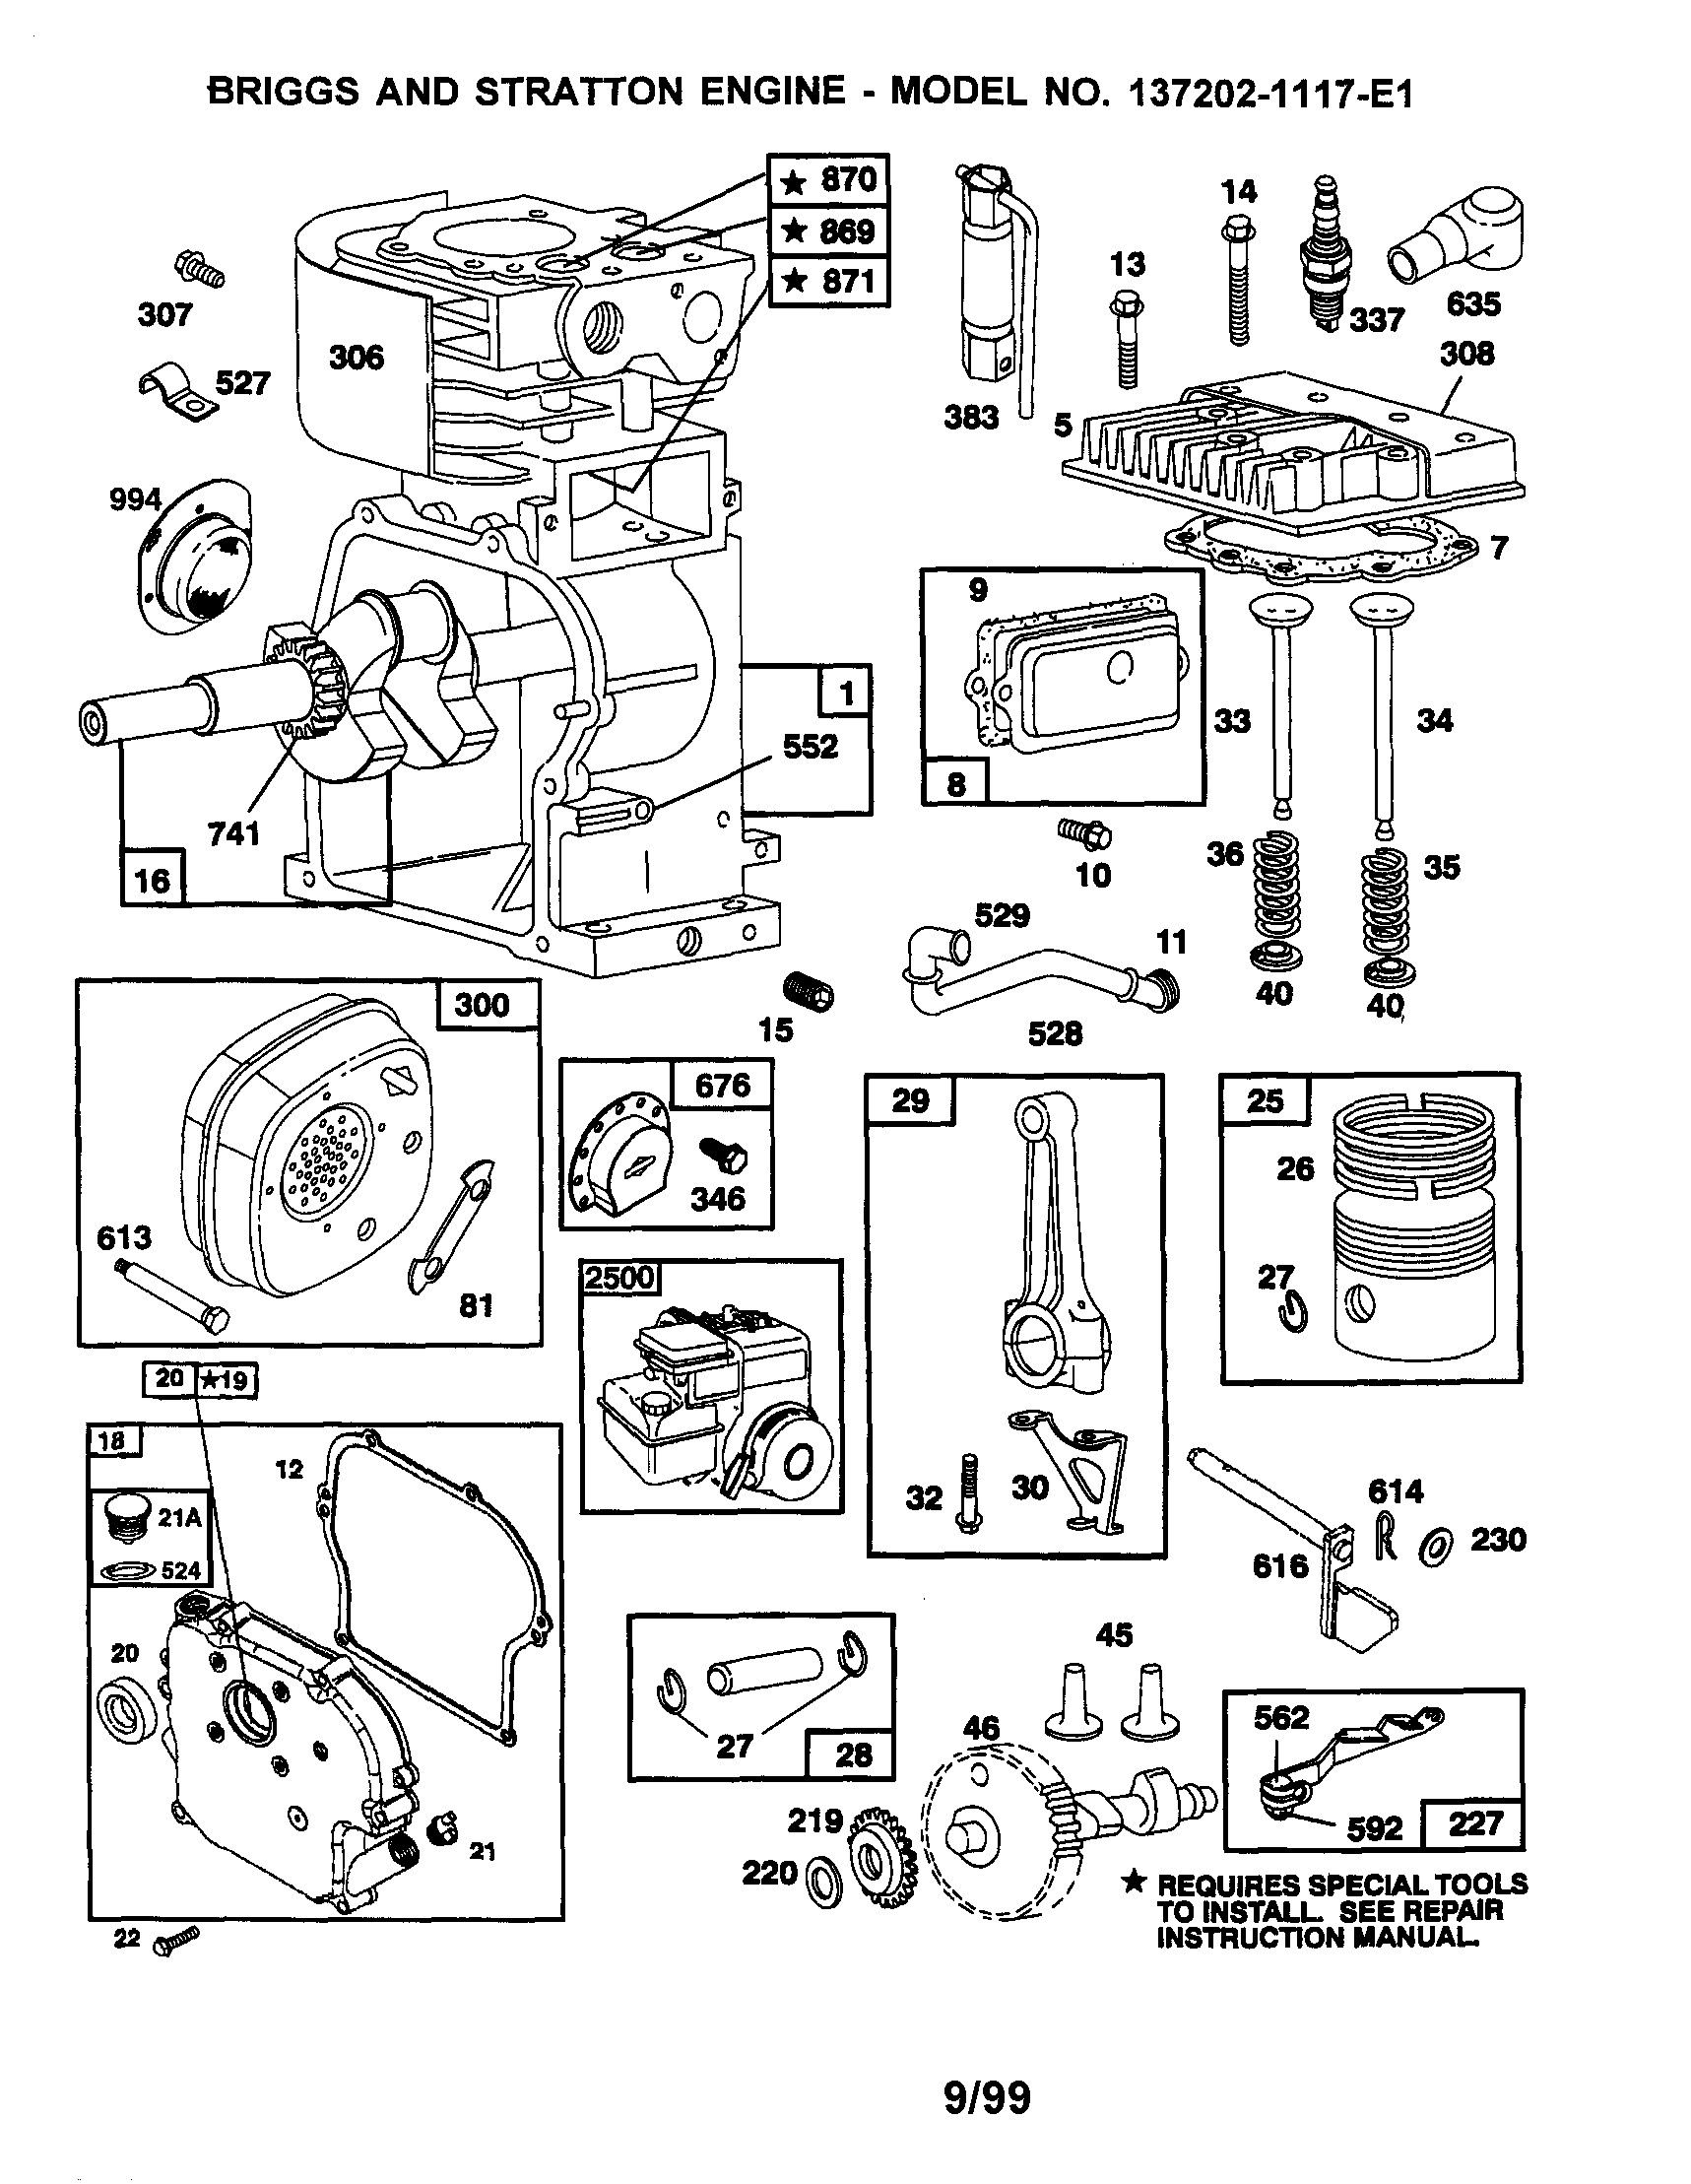 briggs and stratton 850 series manual